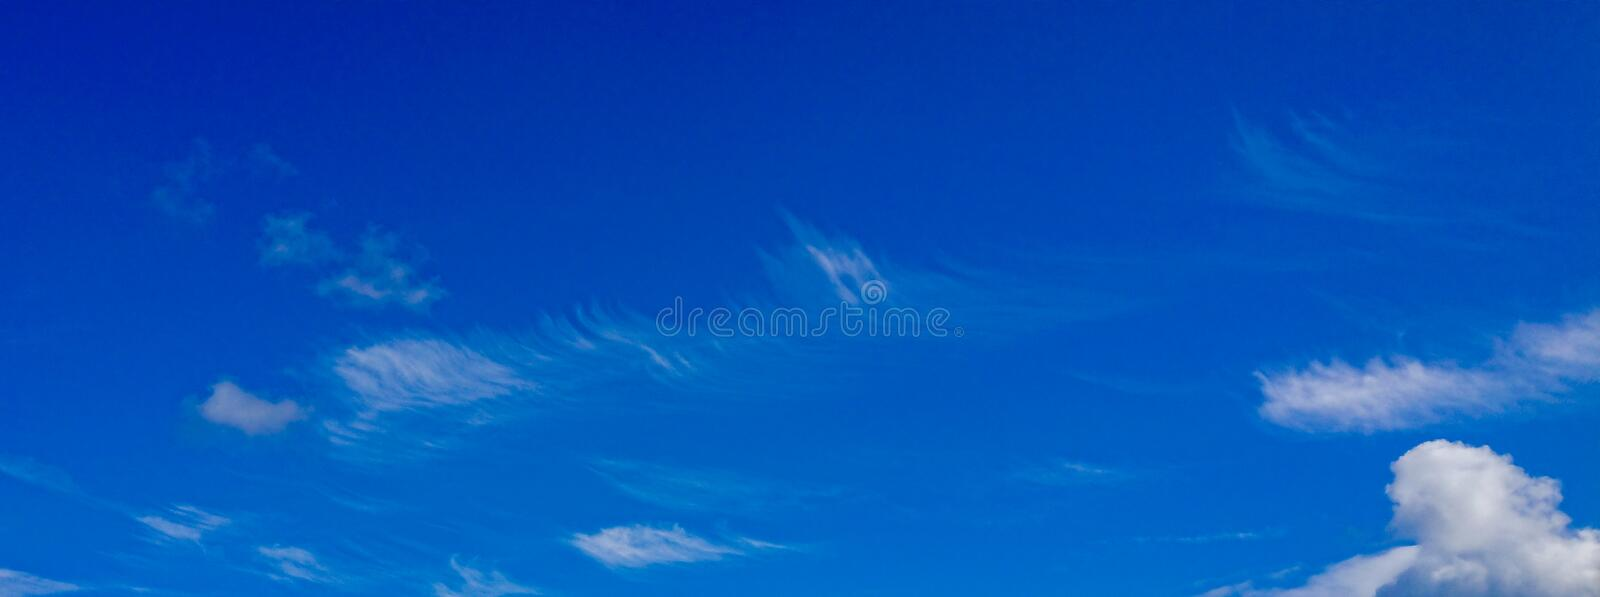 Wind Blown Fluffy Clouds Blue Skyscape. Wind Blown Fluffy Clouds Blue royalty free stock photography